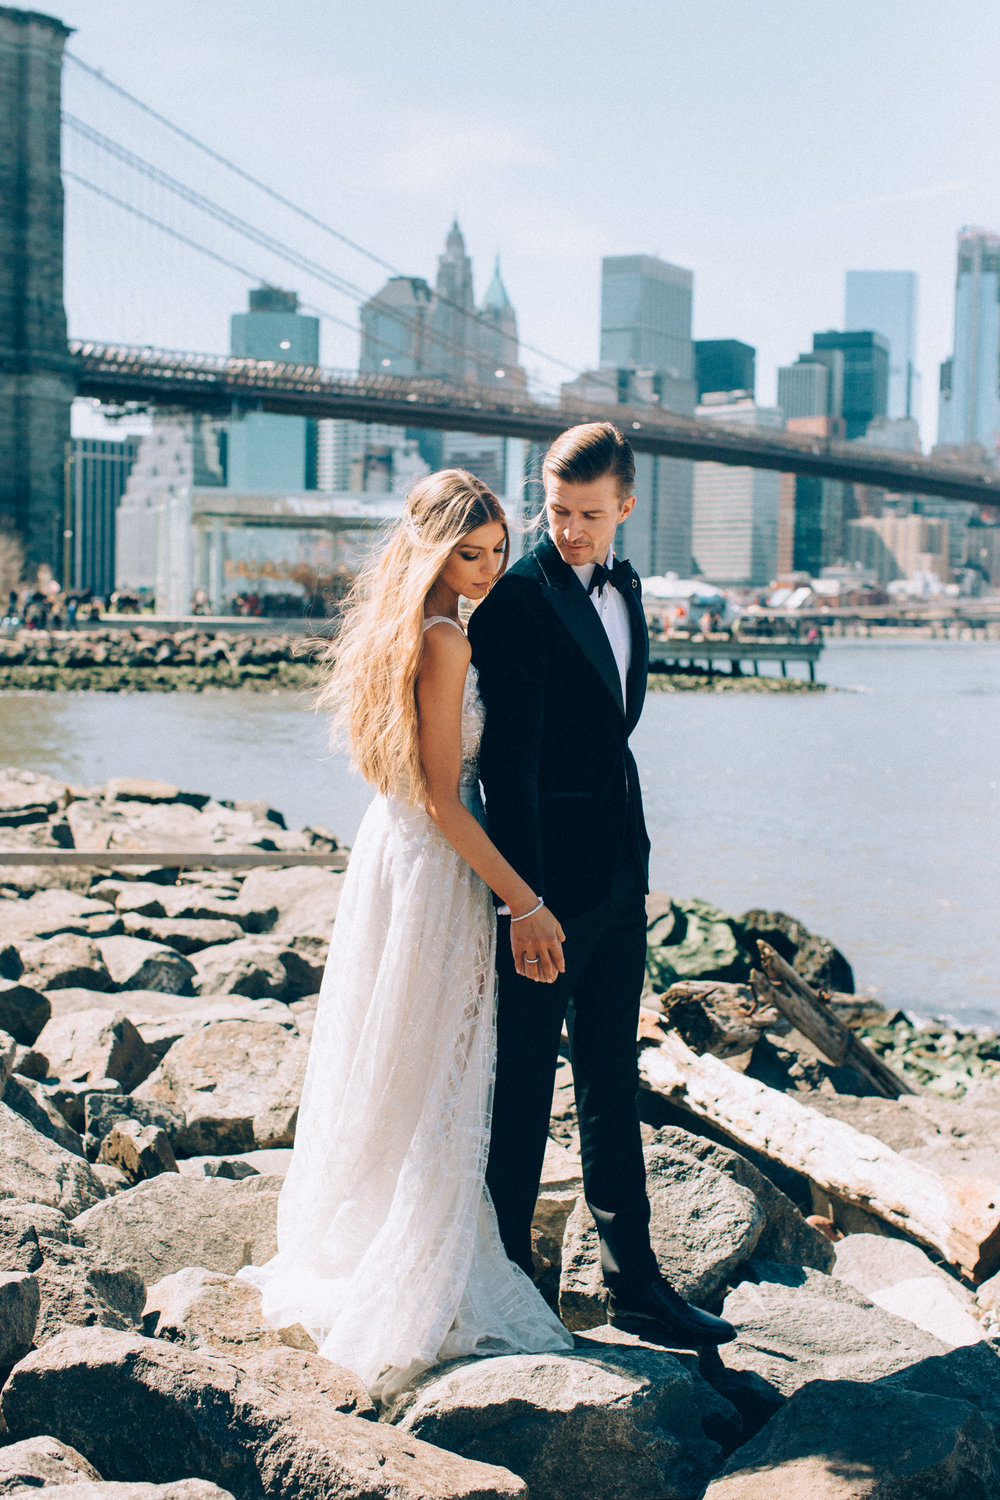 _B2C9832NYC wedding photography manhattan penhouse lotte palace brooklyn wedding photogrpaher boris zaretsky.jpg